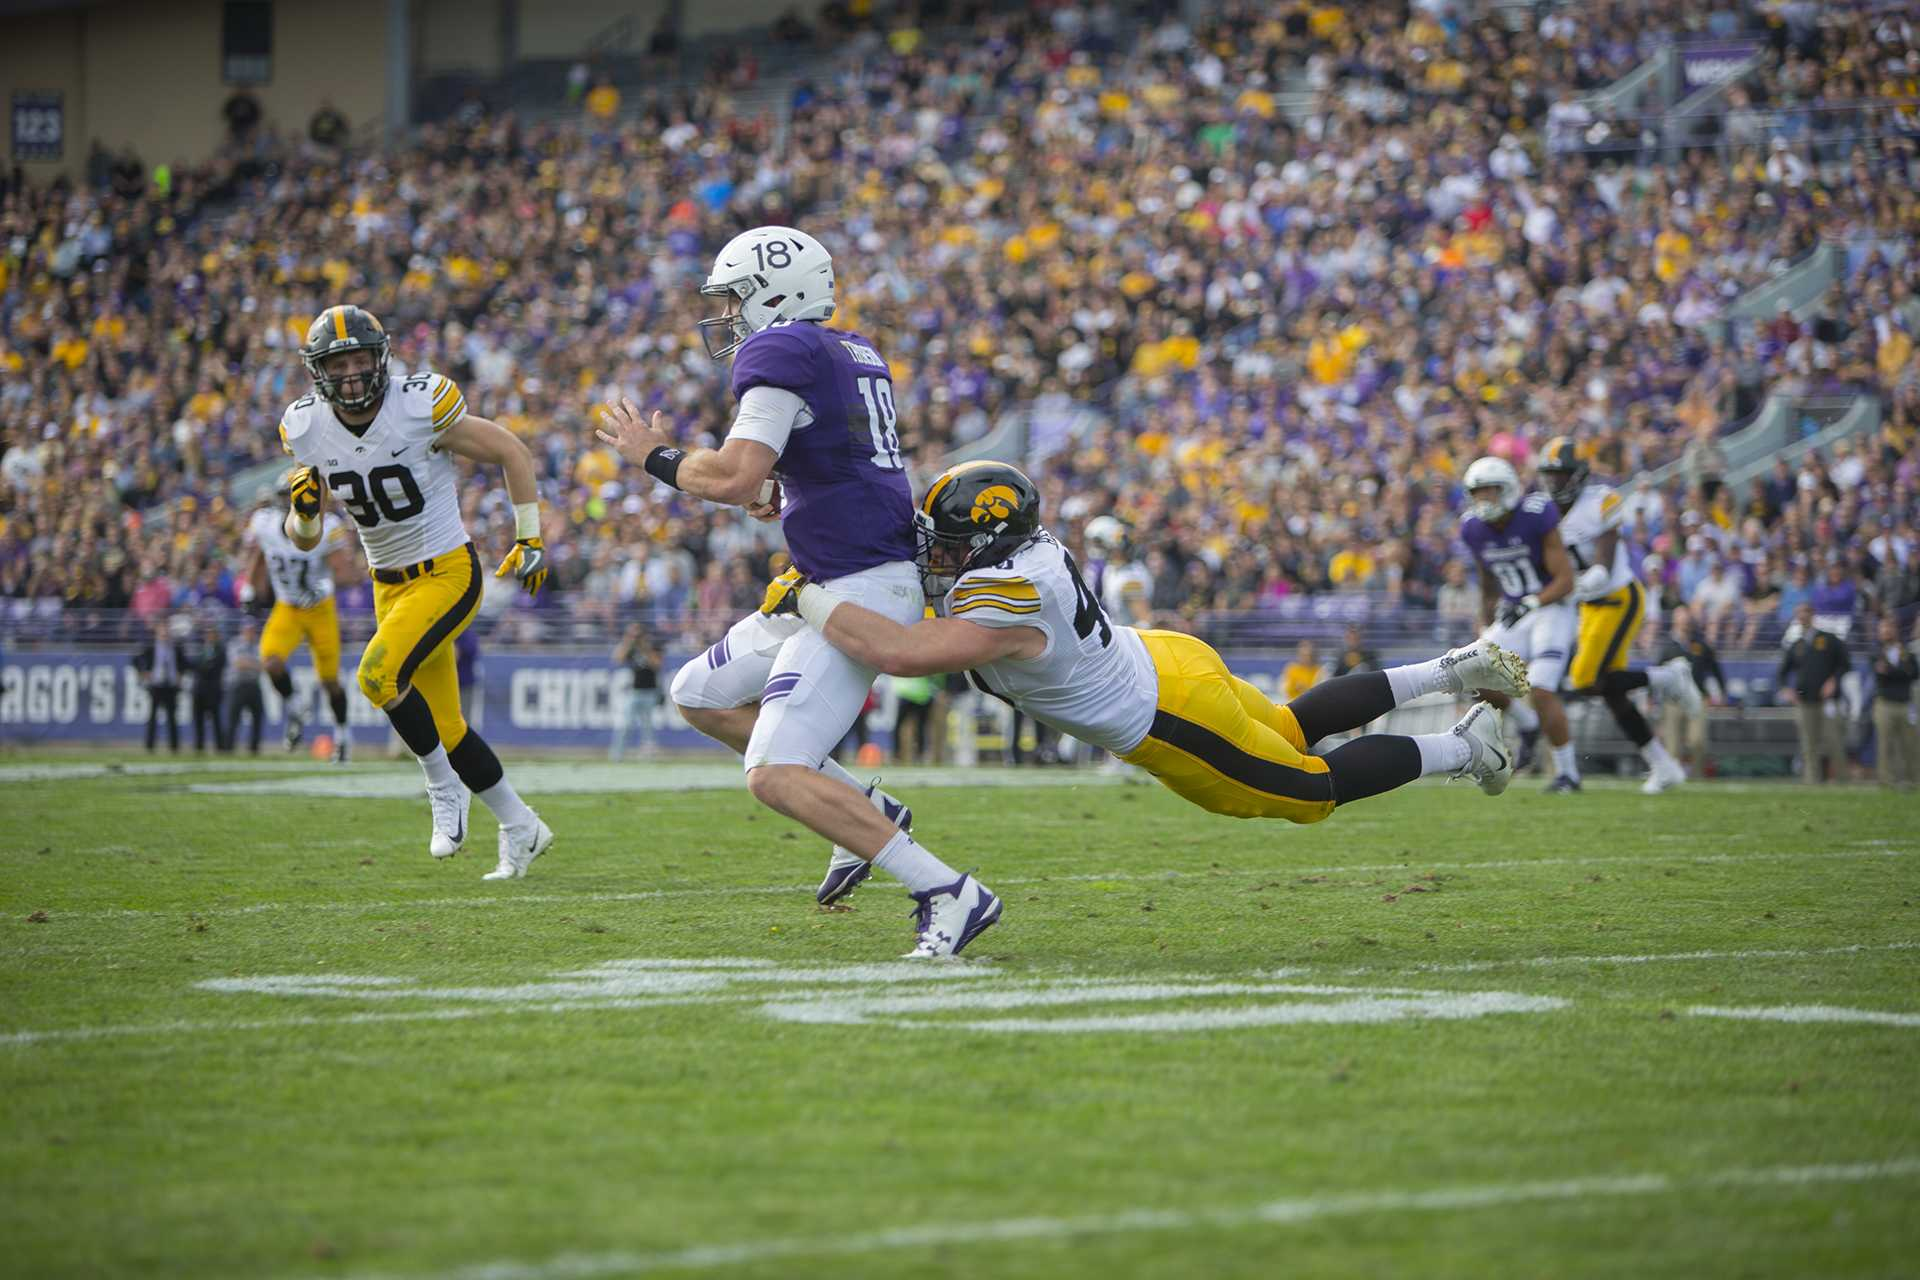 Iowa defensive end Parker Hesse tackles Northwestern quarterback Clayton Thorson during the game between Iowa and Northwestern at Ryan Field in Evanston on Saturday, Oct. 21, 2017. The wildcats defeated the Hawkeyes, 17-10, in overtime. (Lily Smith/The Daily Iowan)